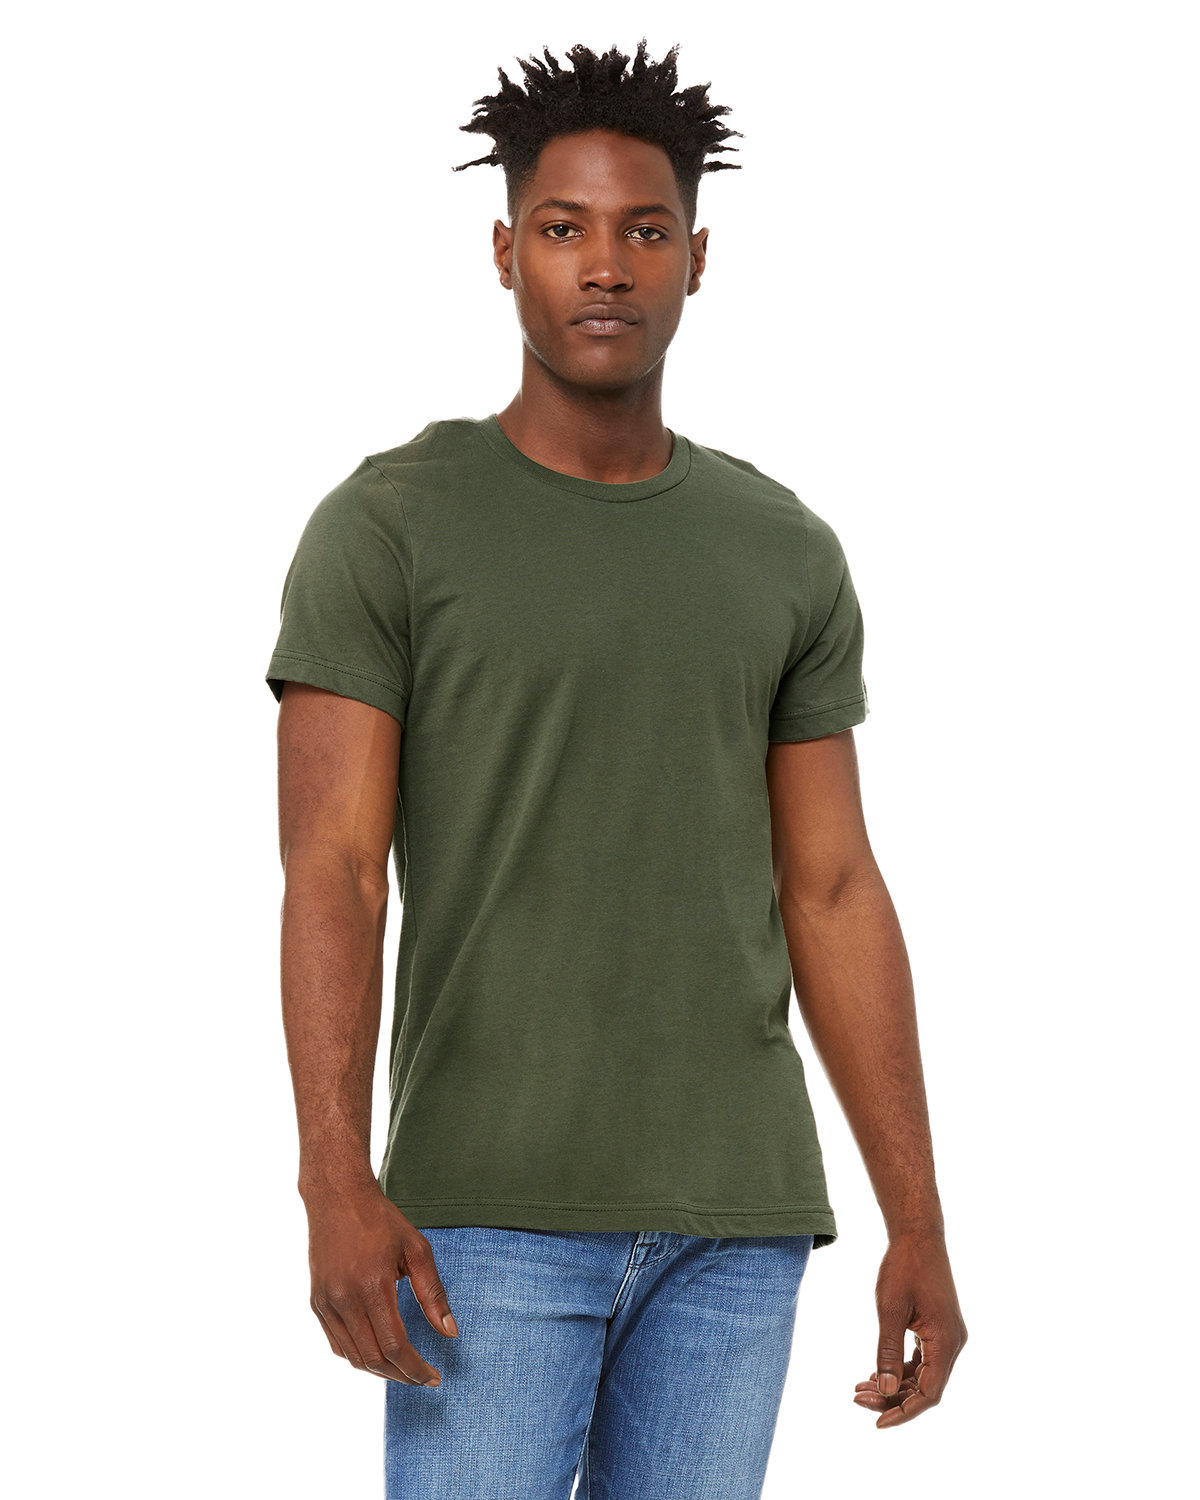 Bella + Canvas Unisex Made In The USA Jersey T-Shirt MILITARY GREEN